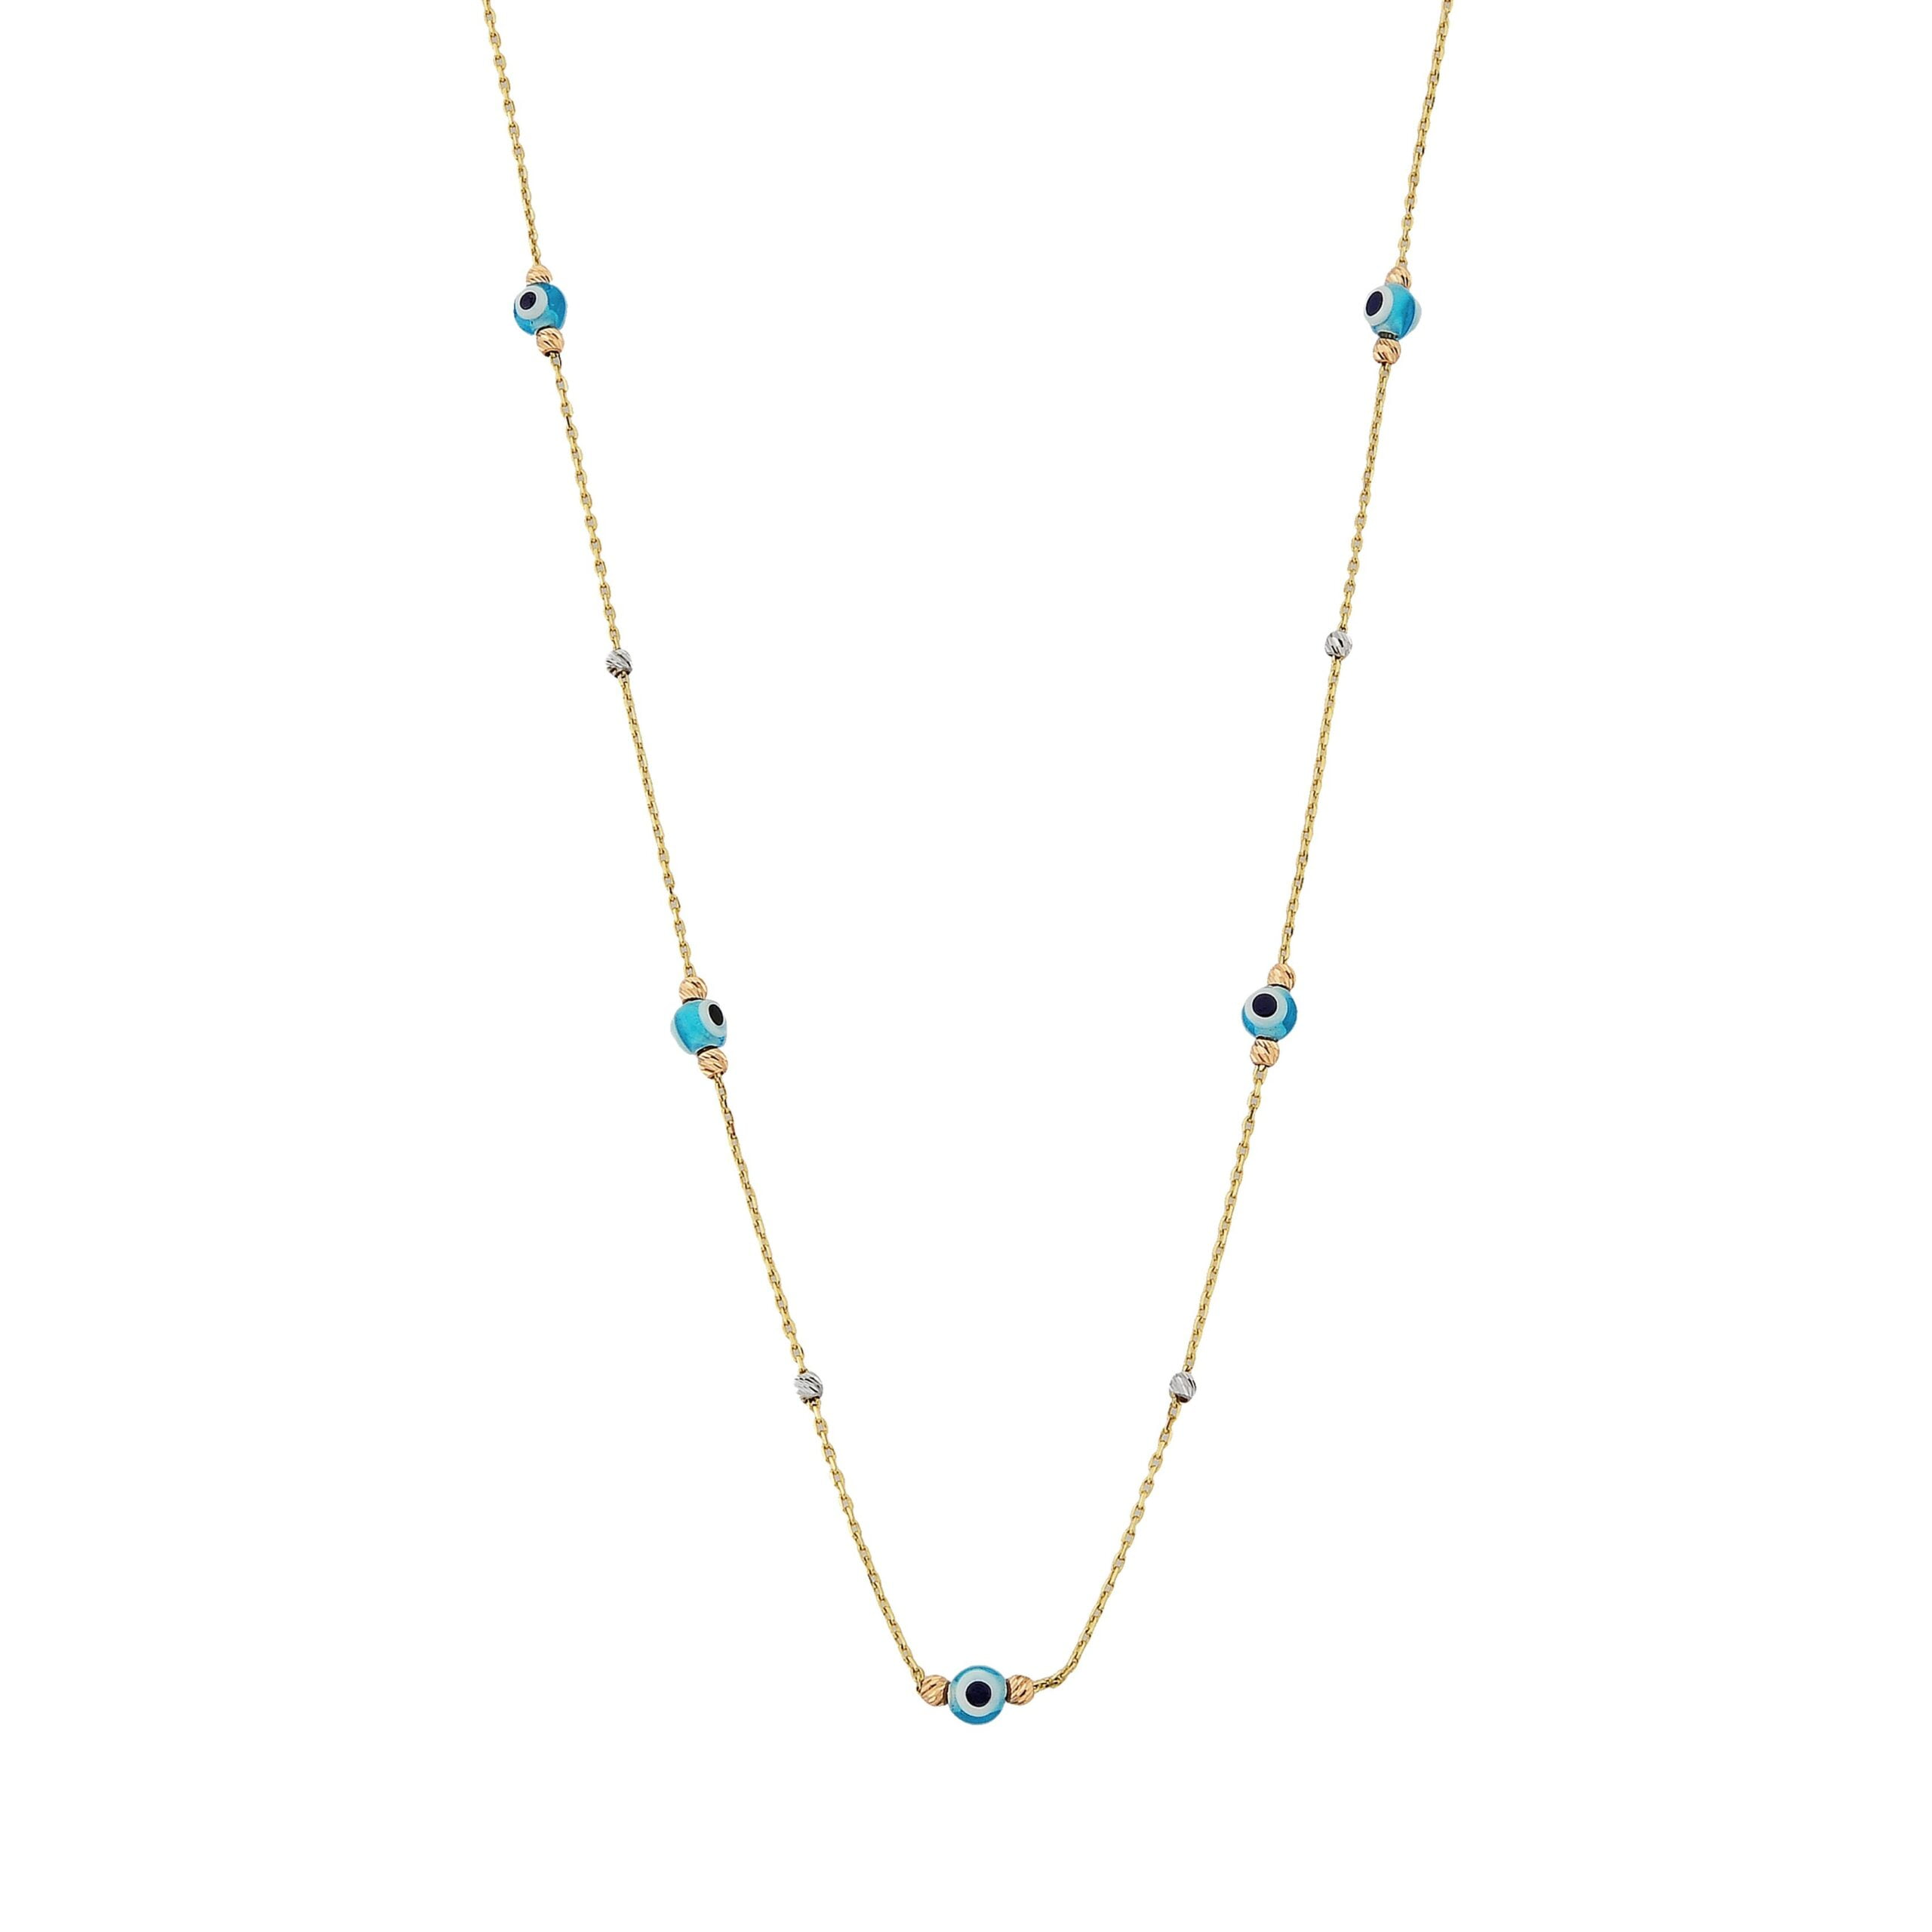 14K Real Solid Gold Lucky Blue Evil Eye and Italian Balls Design Dainty Charm Pendant Necklace for Women Turkish Nazar Christmas Birthday Mother's Day Gift.